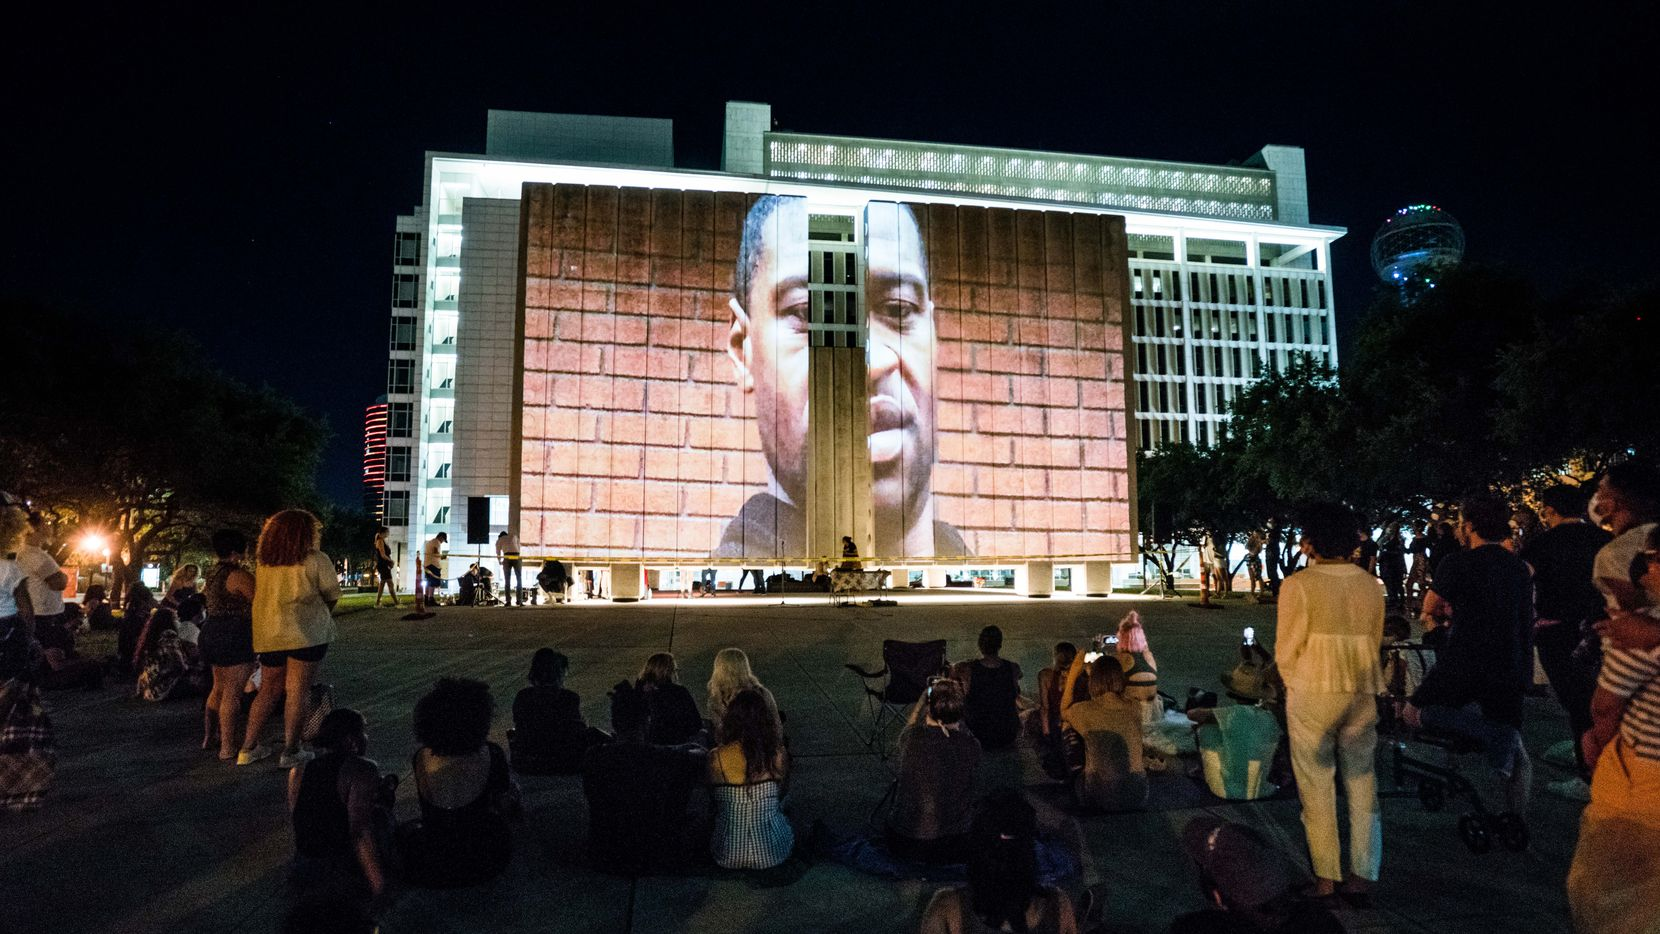 The Freedom Pt. II event on June 12 at JFK Memorial Plaza was a celebration of Black Lives Matter and Black Art Matters that included art, dance, panel discussion, 3D projections and a fashion show. It was organized by Dallas artist and fashion designer Charles Smith II.